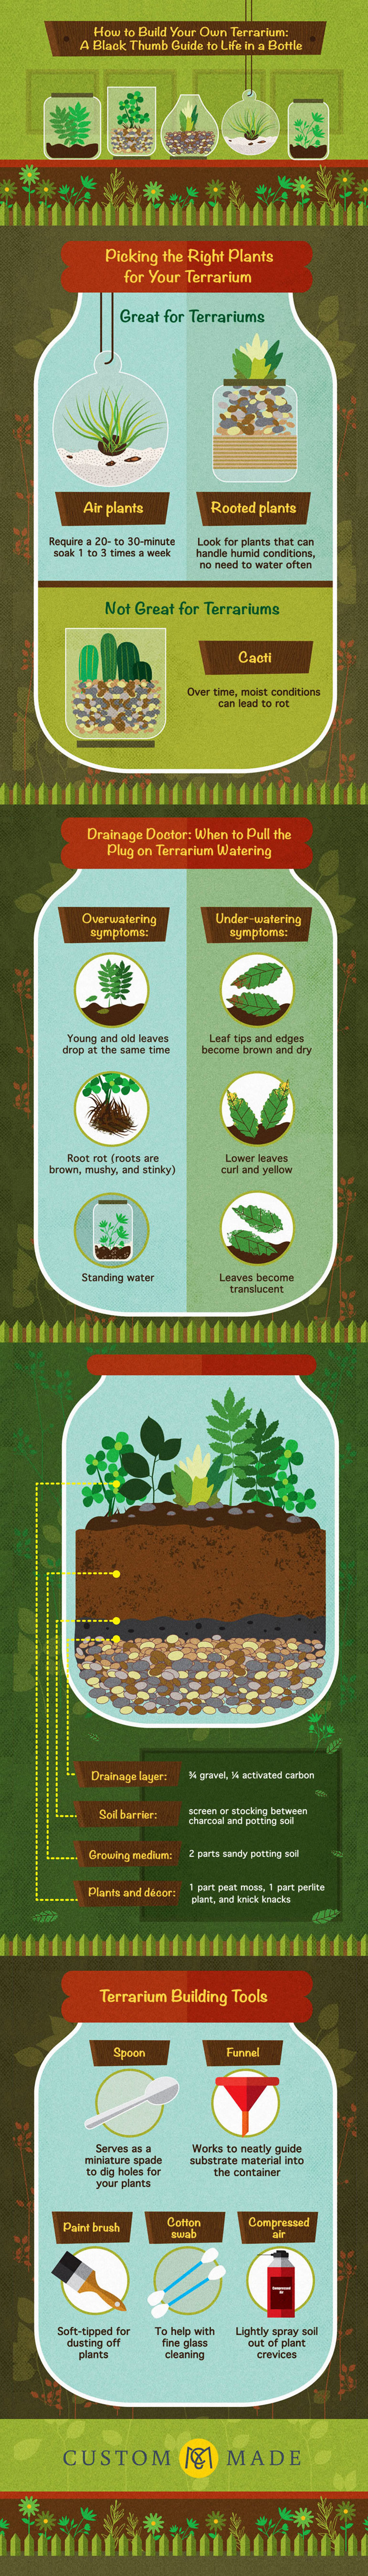 How to Make a Plant Terrarium - Gardening Infographic